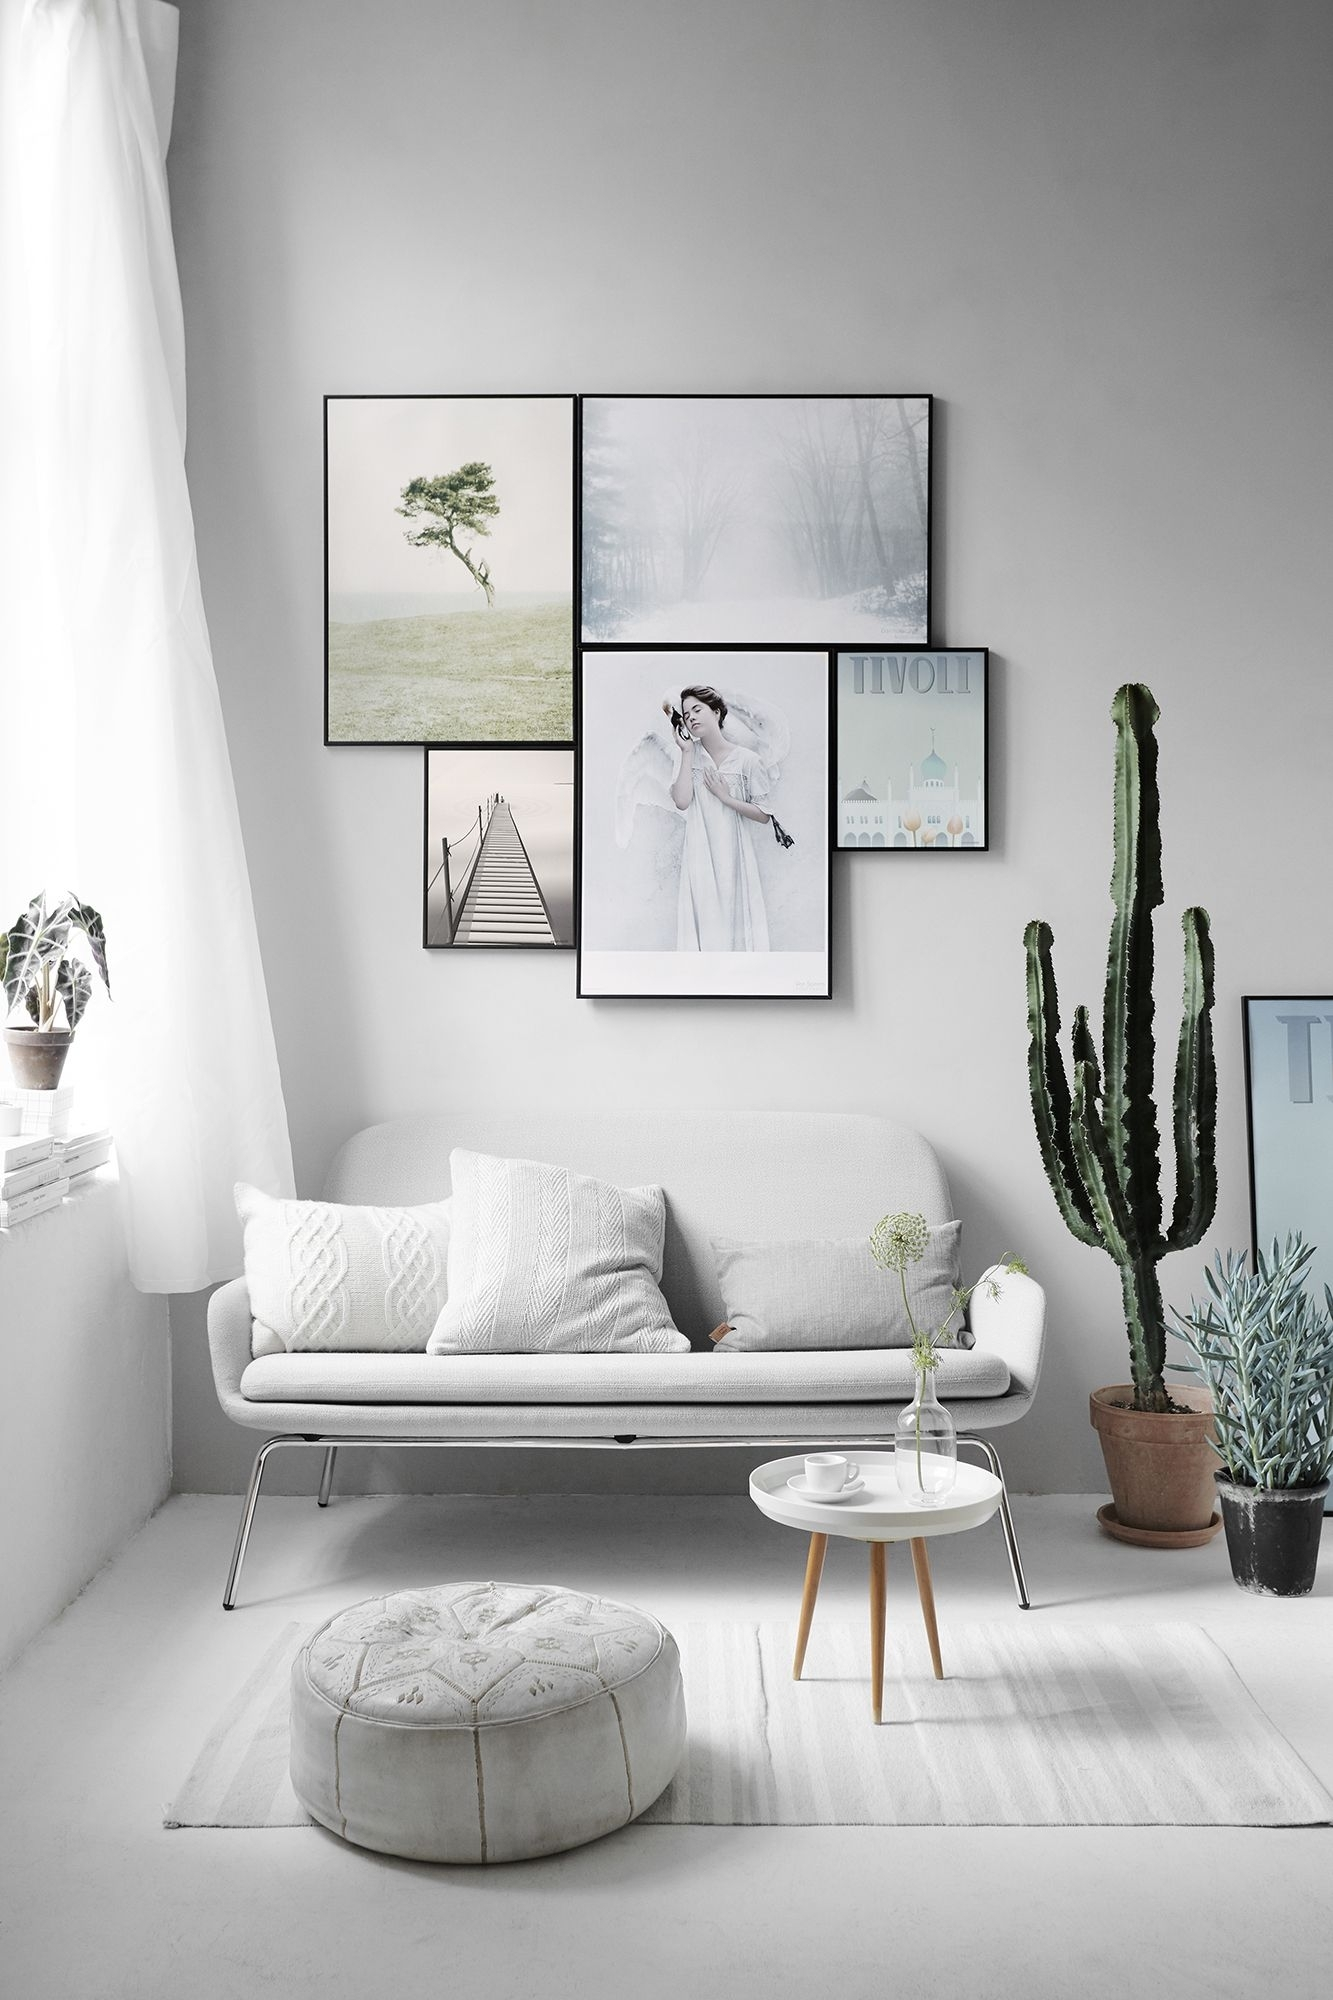 10 Scandinavian Style Interiors Ideas | Pastel Interior With Regard To Most Recently Released Scandinavian Fabric Wall Art (View 13 of 15)